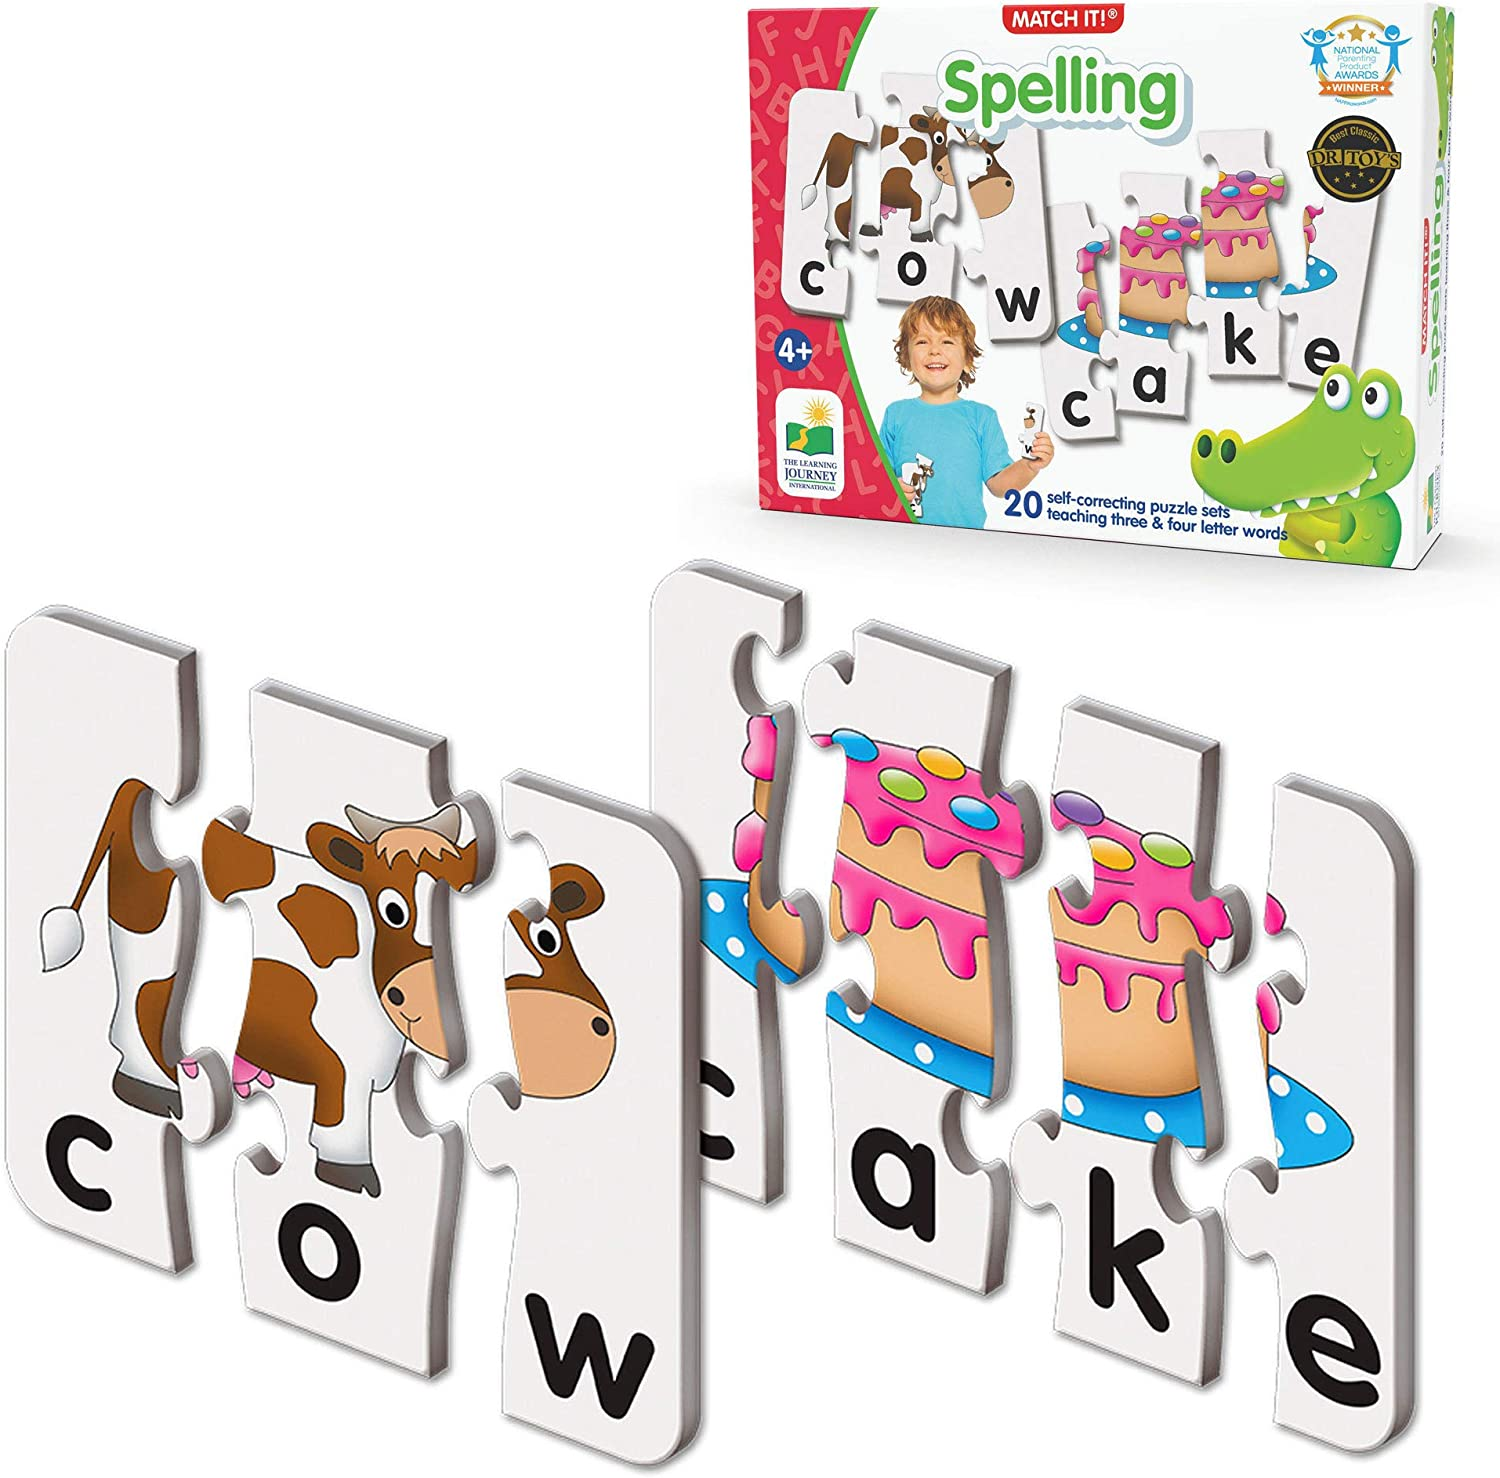 Amazon Com The Learning Journey Match It Spelling 20 Piece Self Correcting Spelling Puzzle For Three And Four Letter Words With Matching Images Learning Toys For 4 Year Olds Award